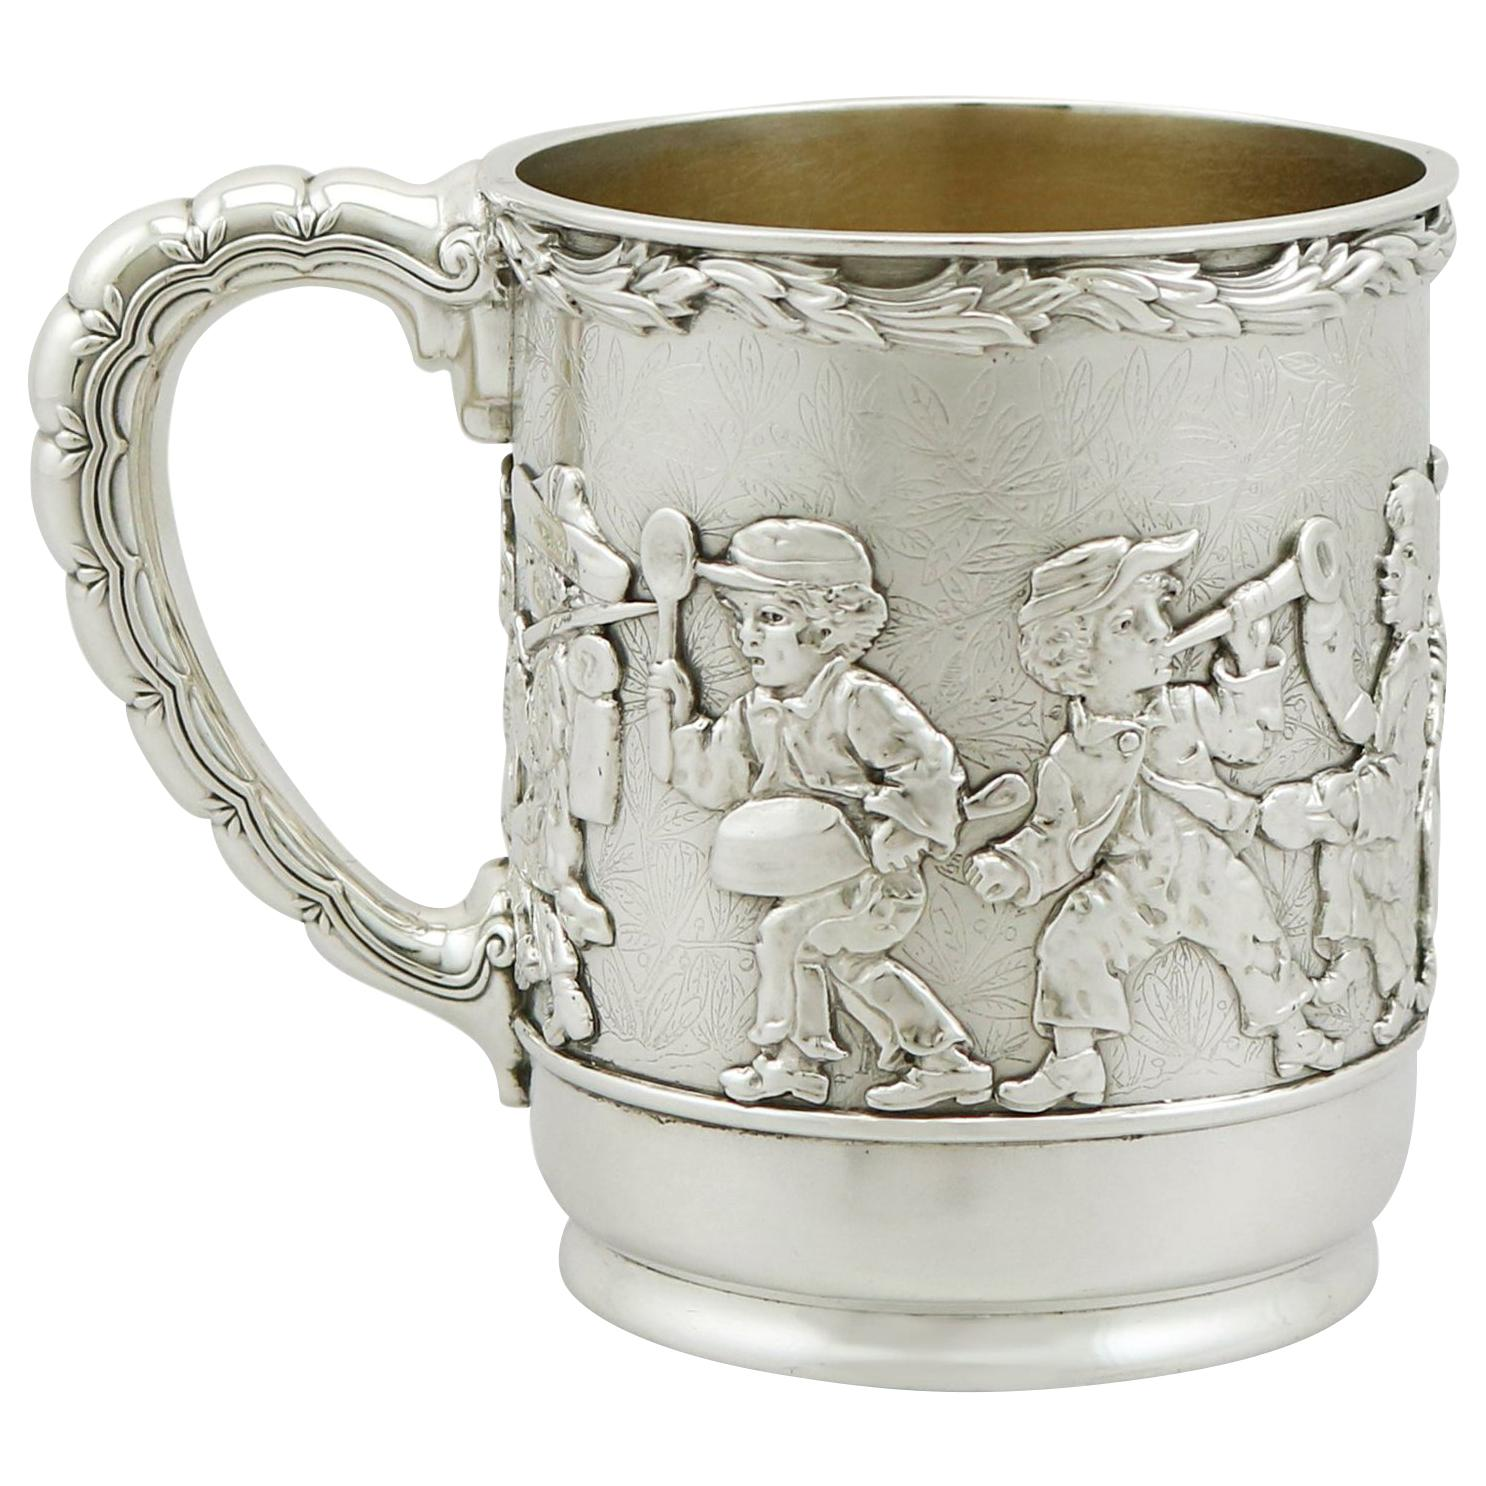 Antique American Sterling Silver Christening Mug by Tiffany & Co., 1879